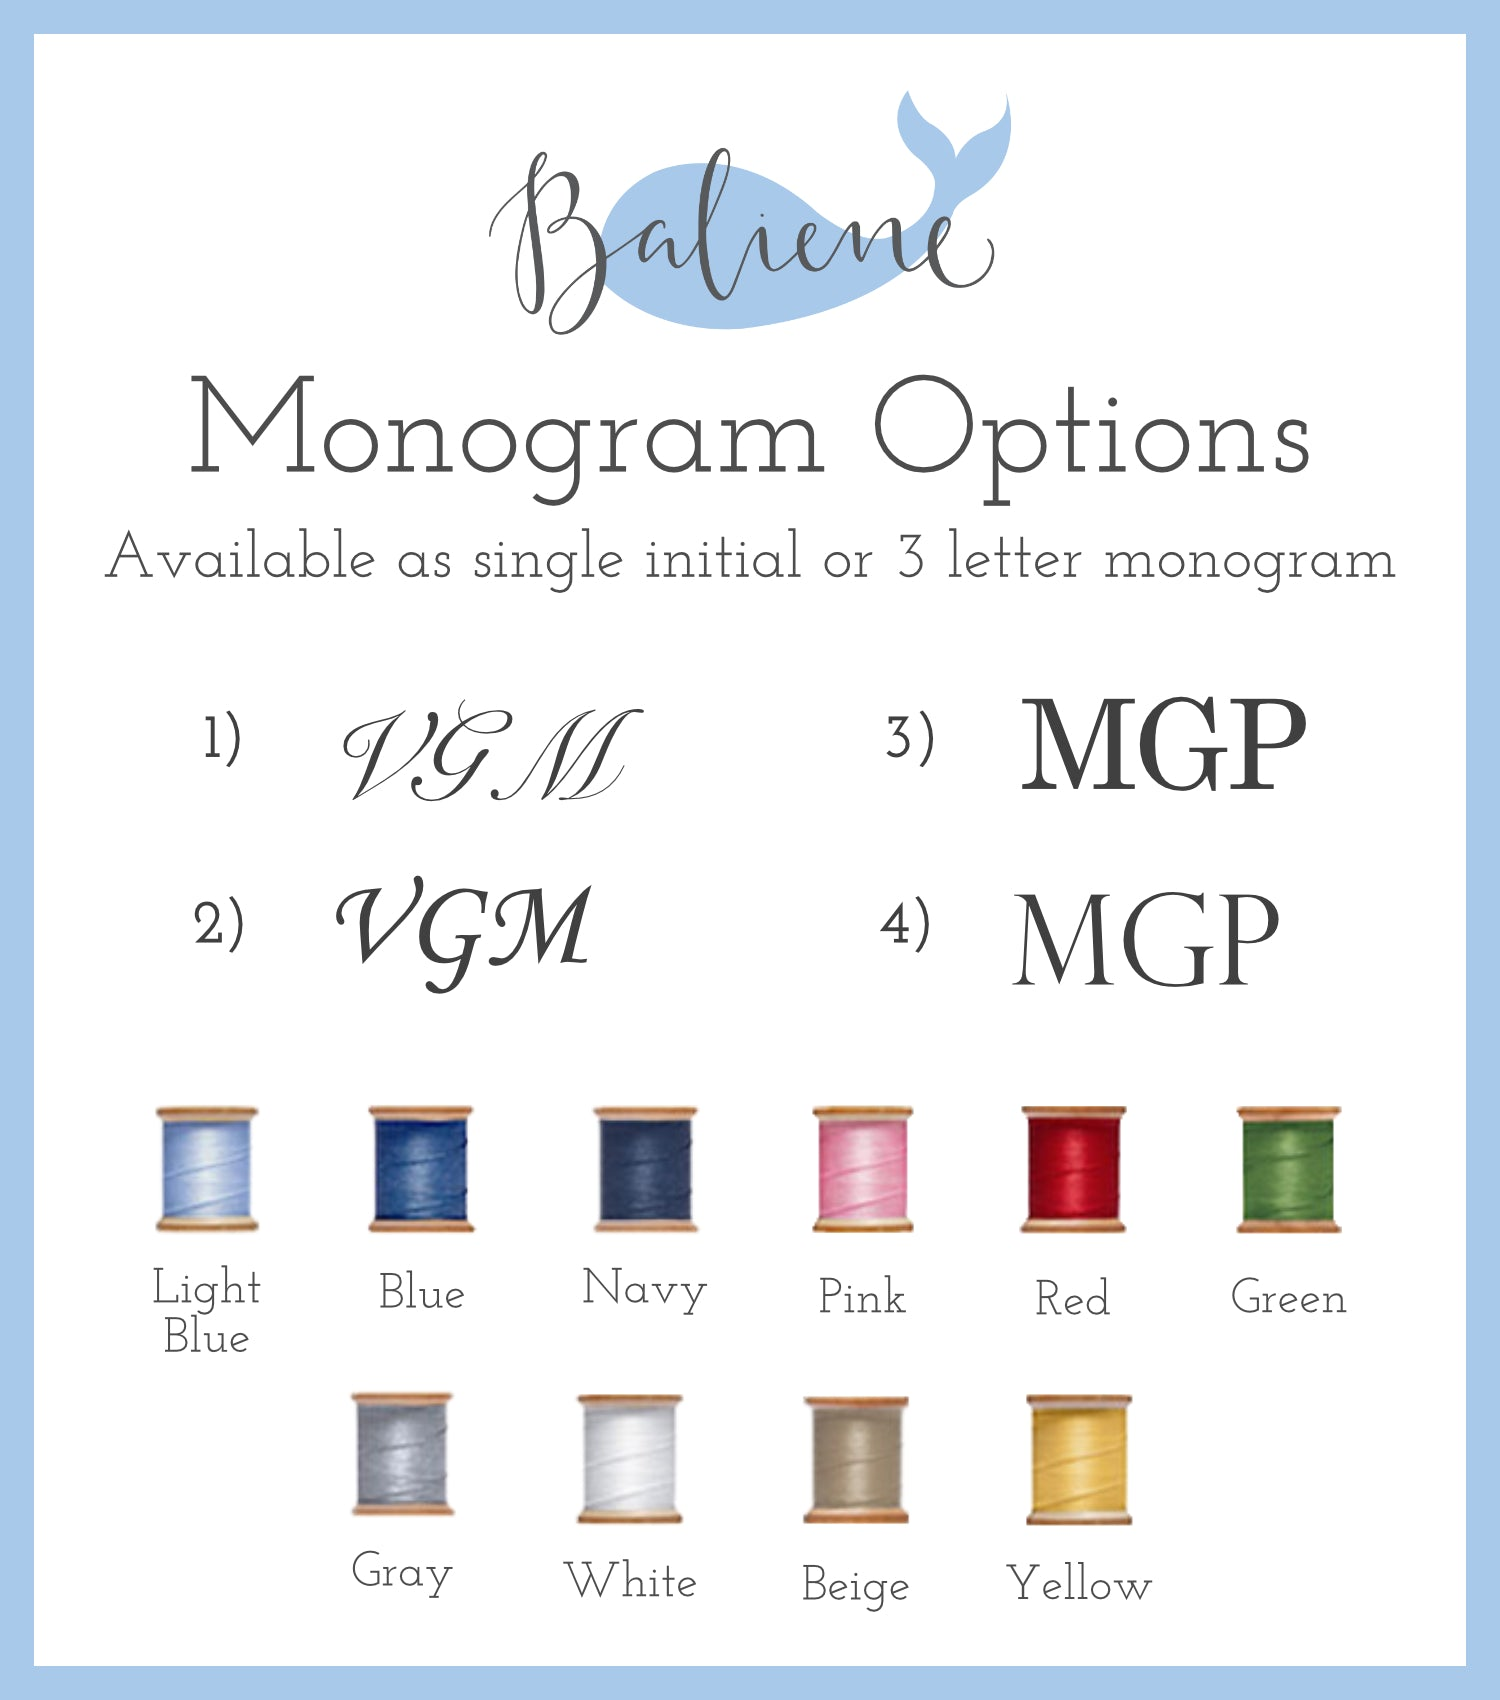 Baliene Monogram Options